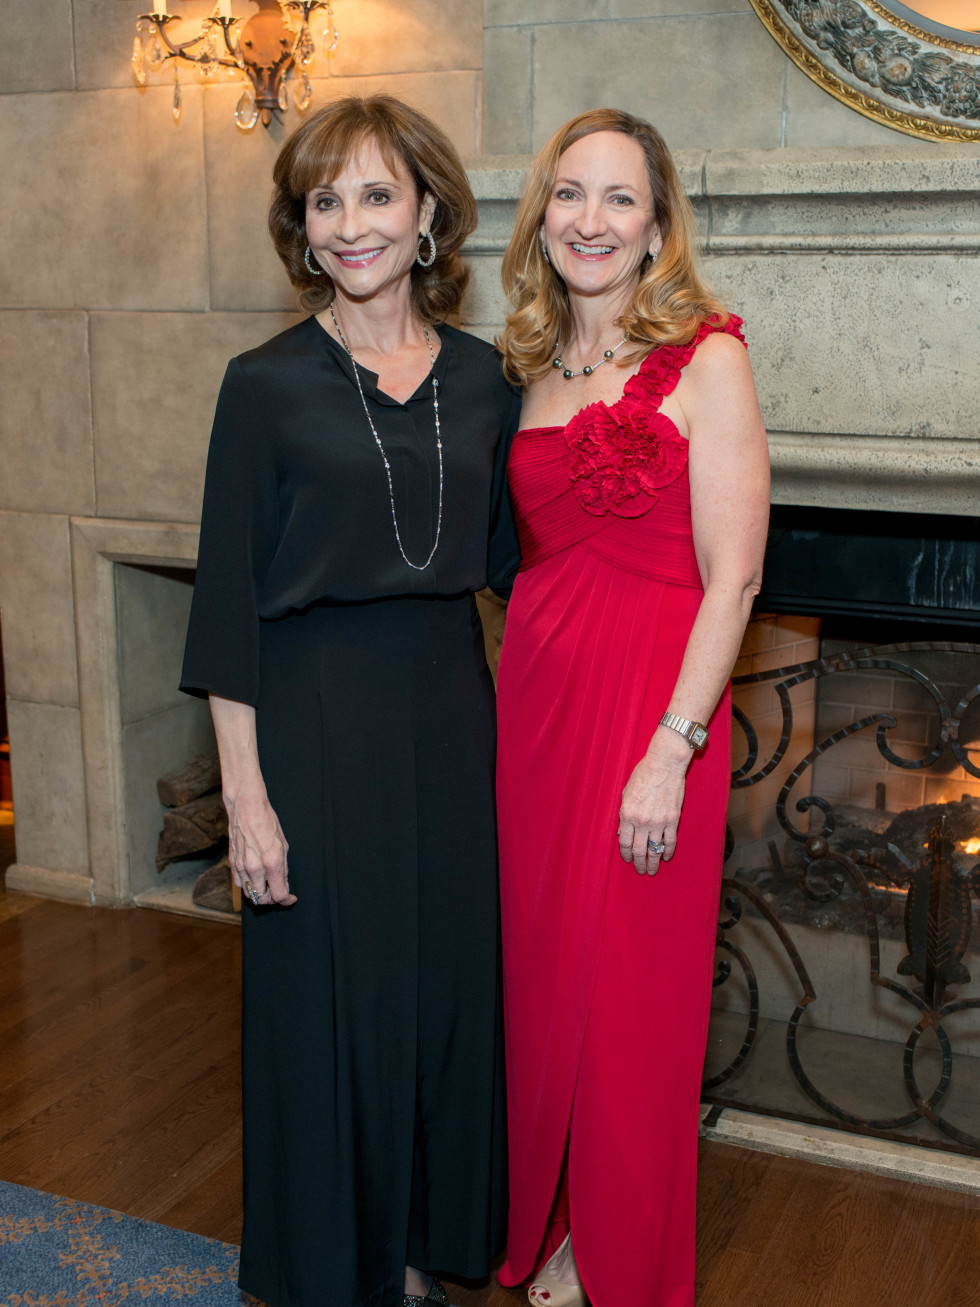 Consuelo Duroc Danner and Christina Bryan at Inprint Gala